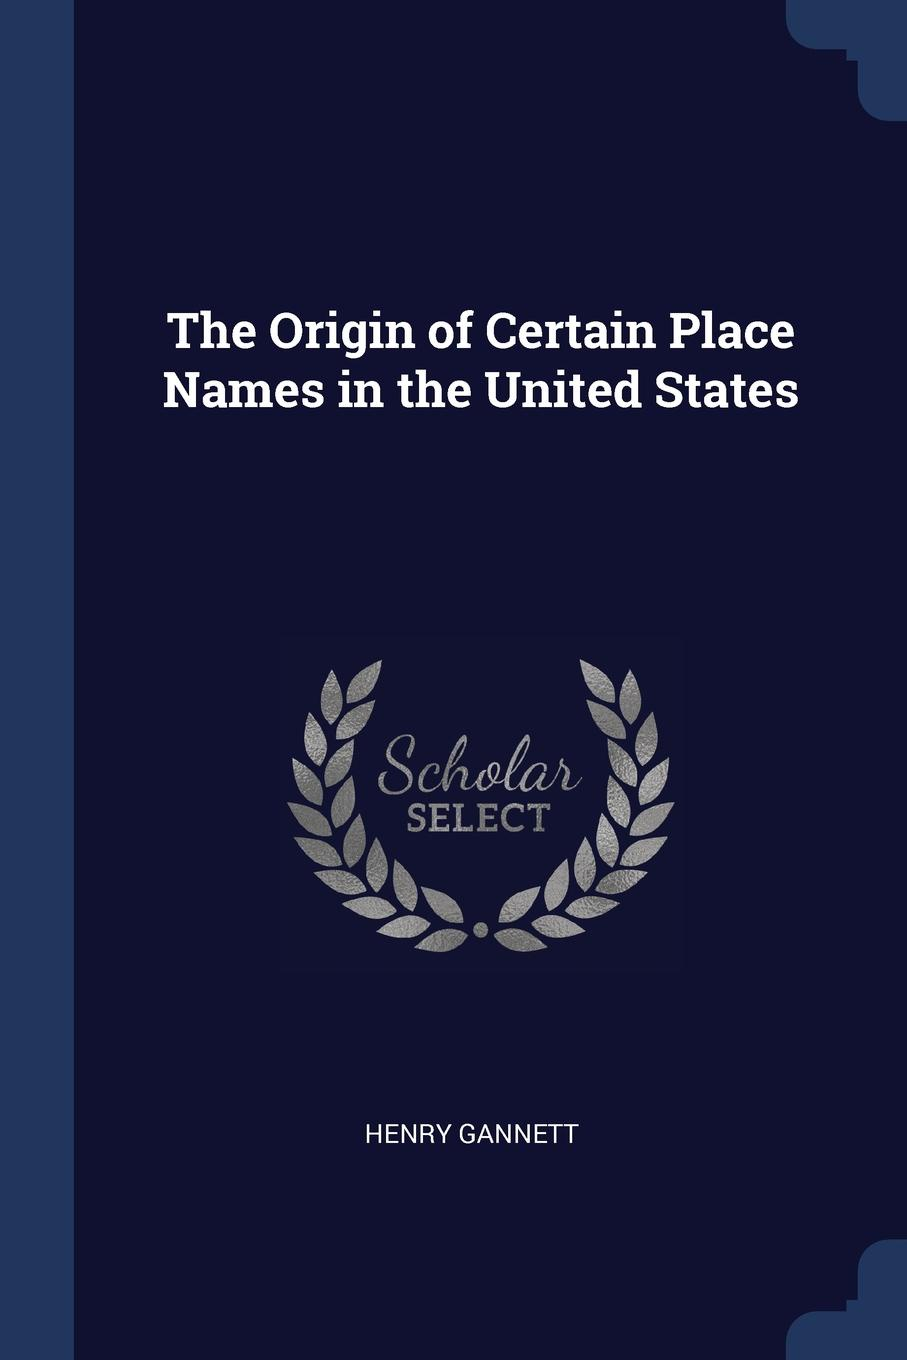 Henry Gannett The Origin of Certain Place Names in the United States